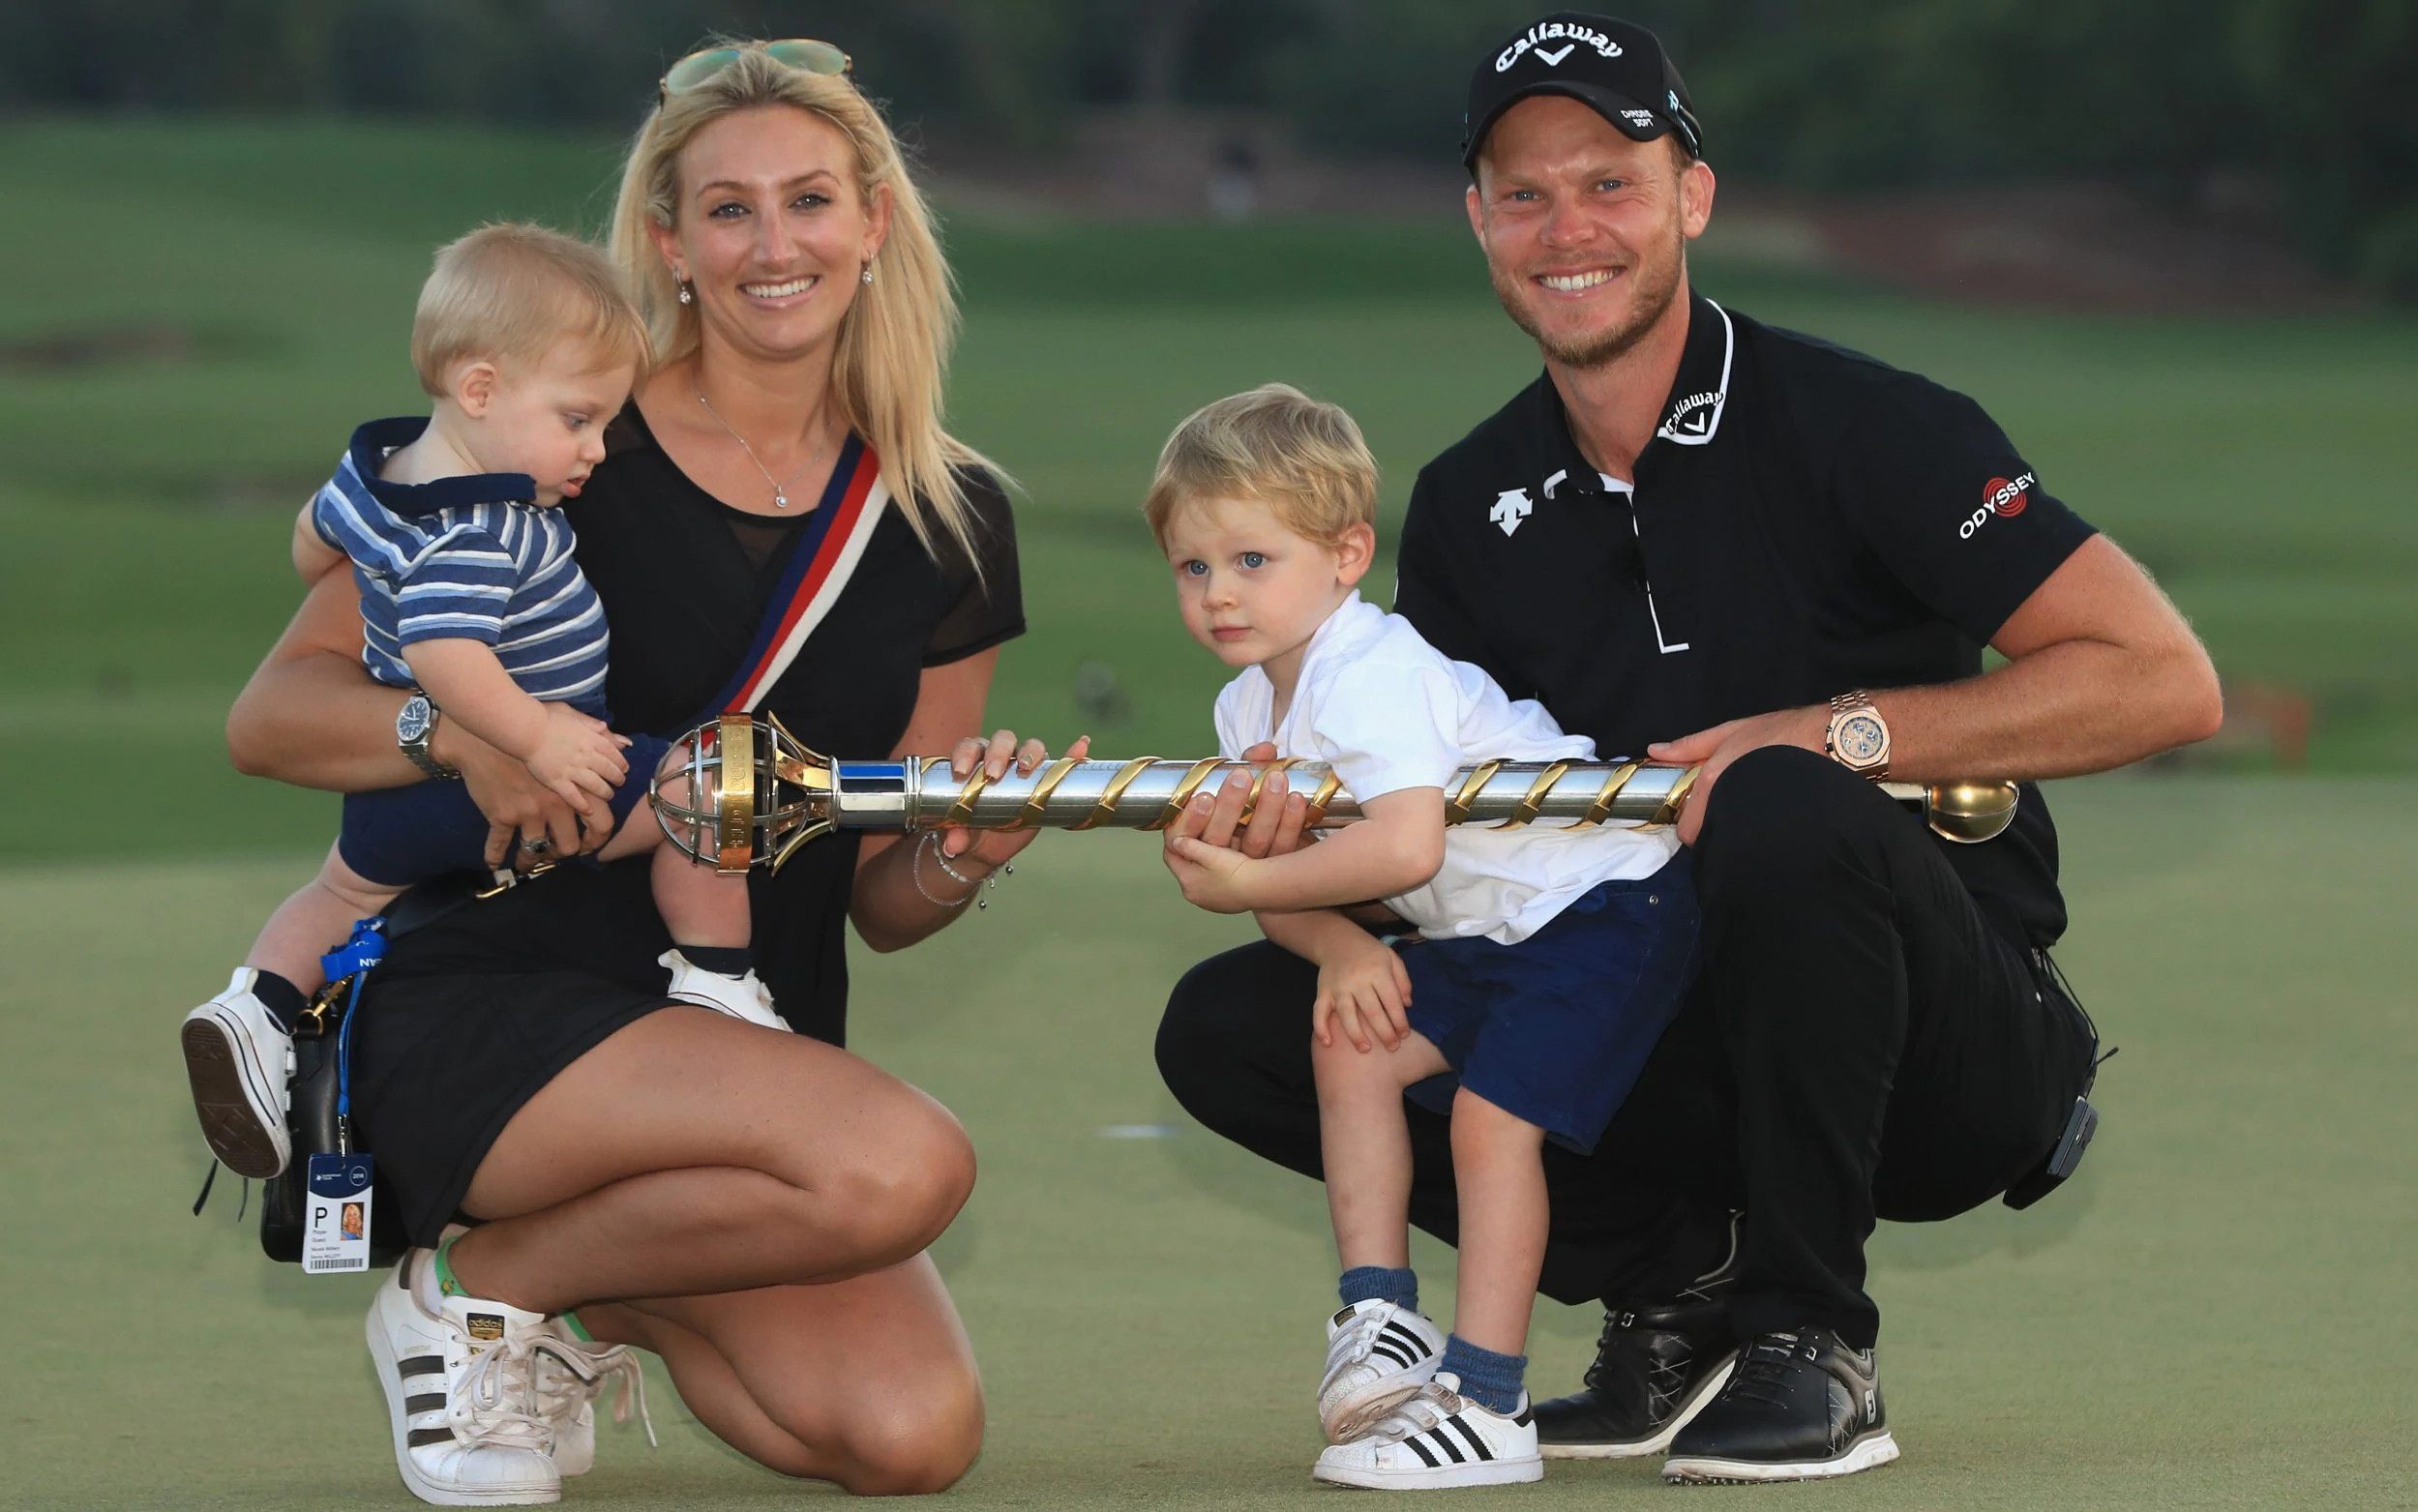 Danny Willett tests positive for COVID-19, withdraws from Players